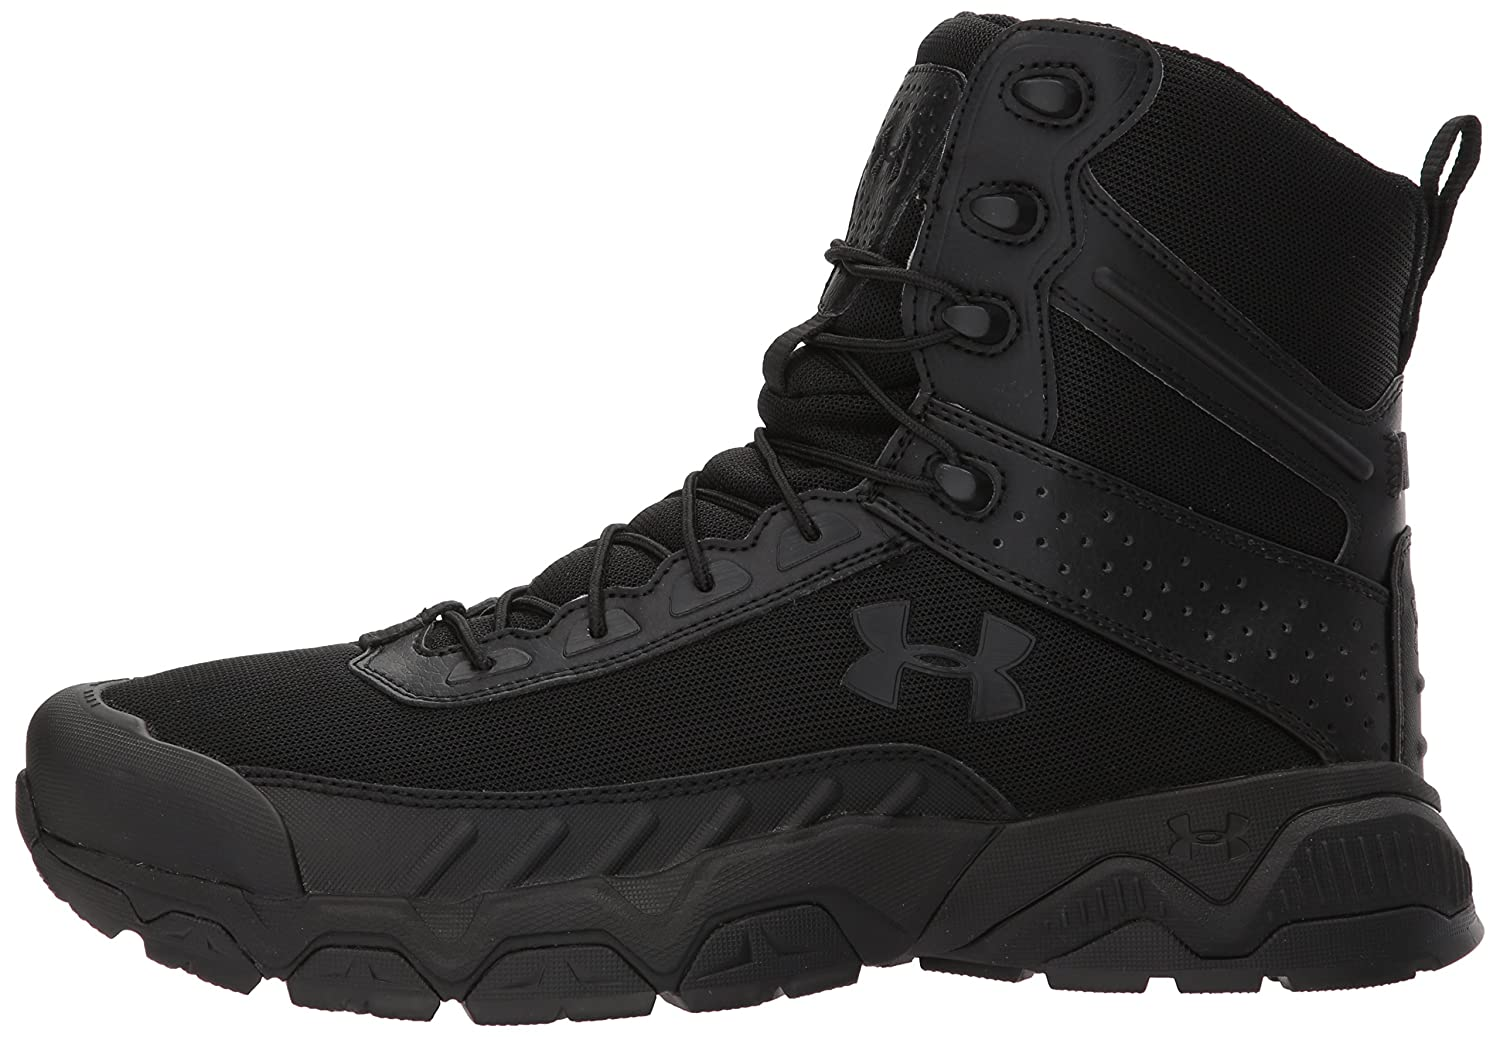 Under Armour Hombre Valsetz 2.0 funcional Botas Zapatillas - Negro, 44: Amazon.es: Zapatos y complementos